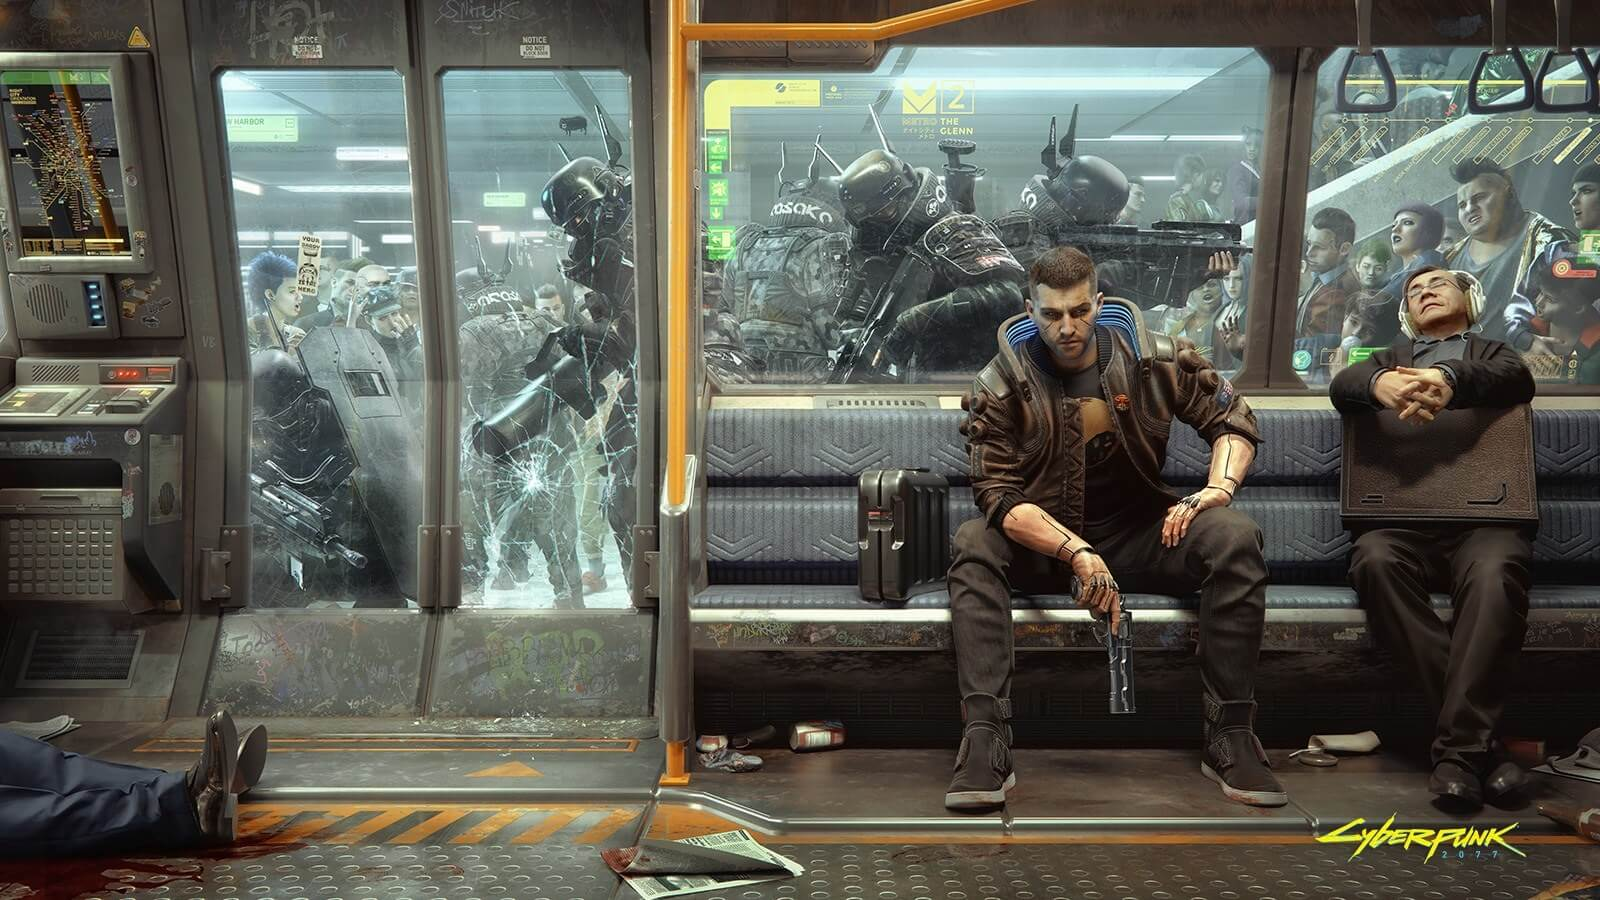 Cyberpunk 2077 confirmed to be a DirectX 12 exclusive on PC